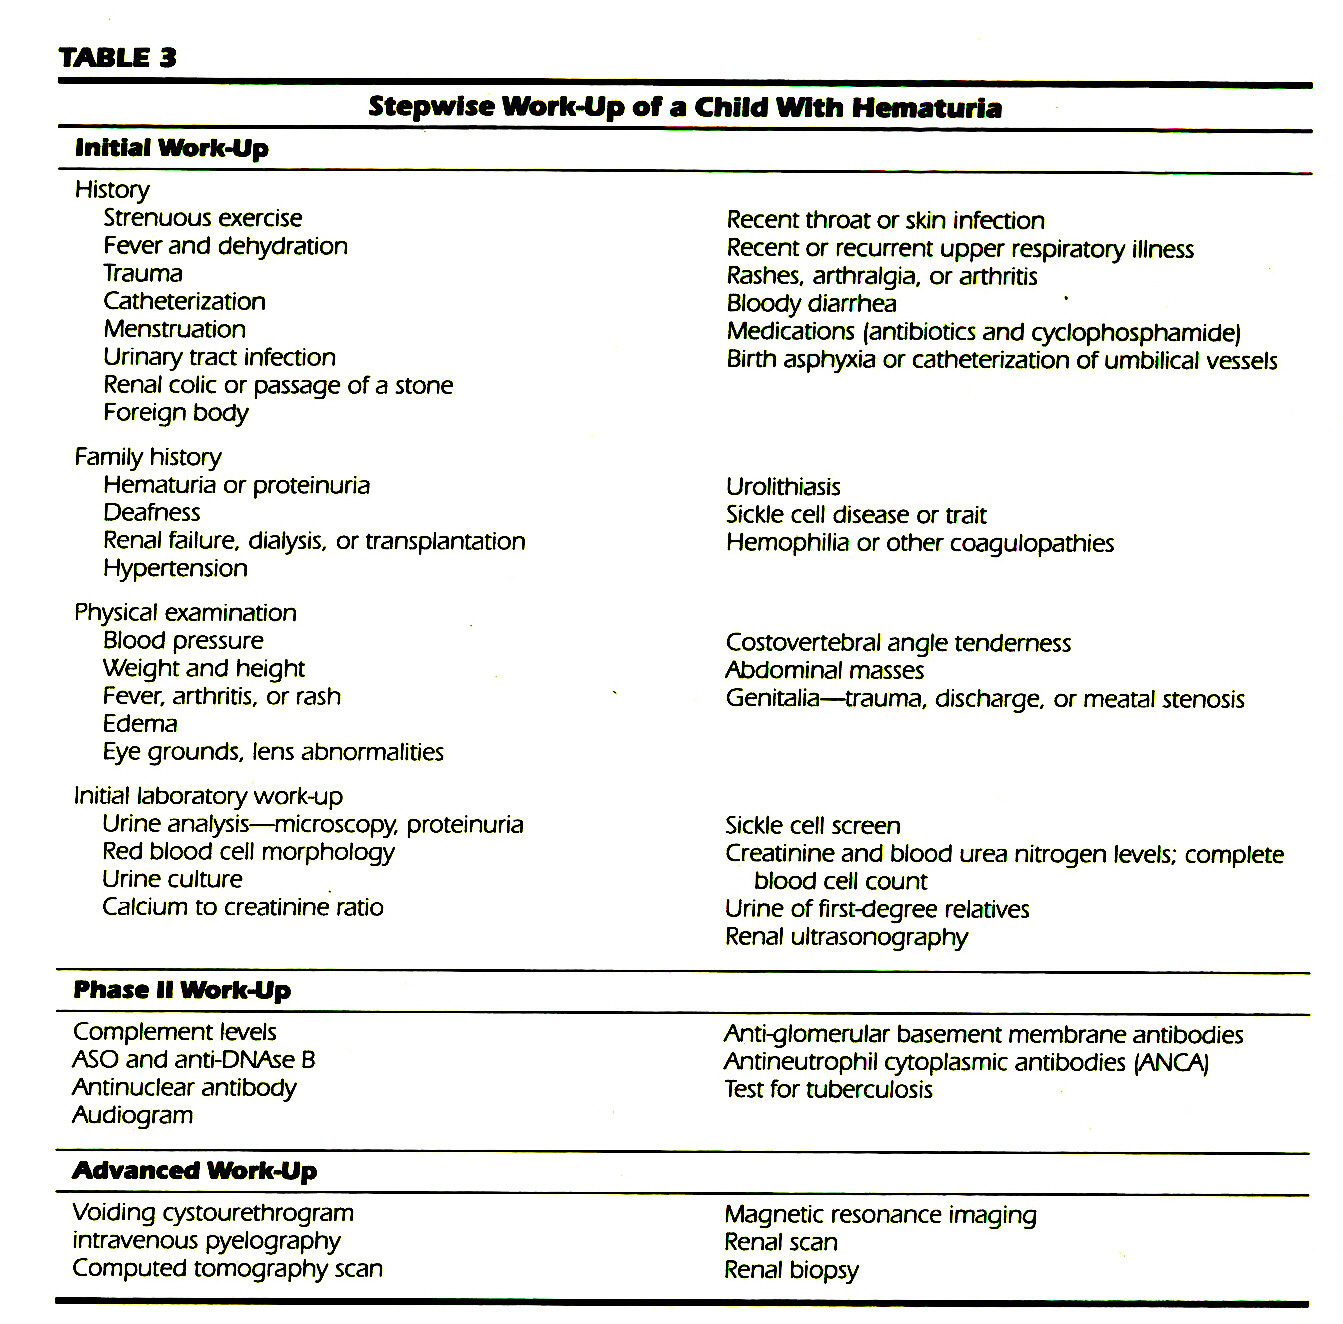 TABLE 3Stepwise Work-Up of a Child With Hematuria